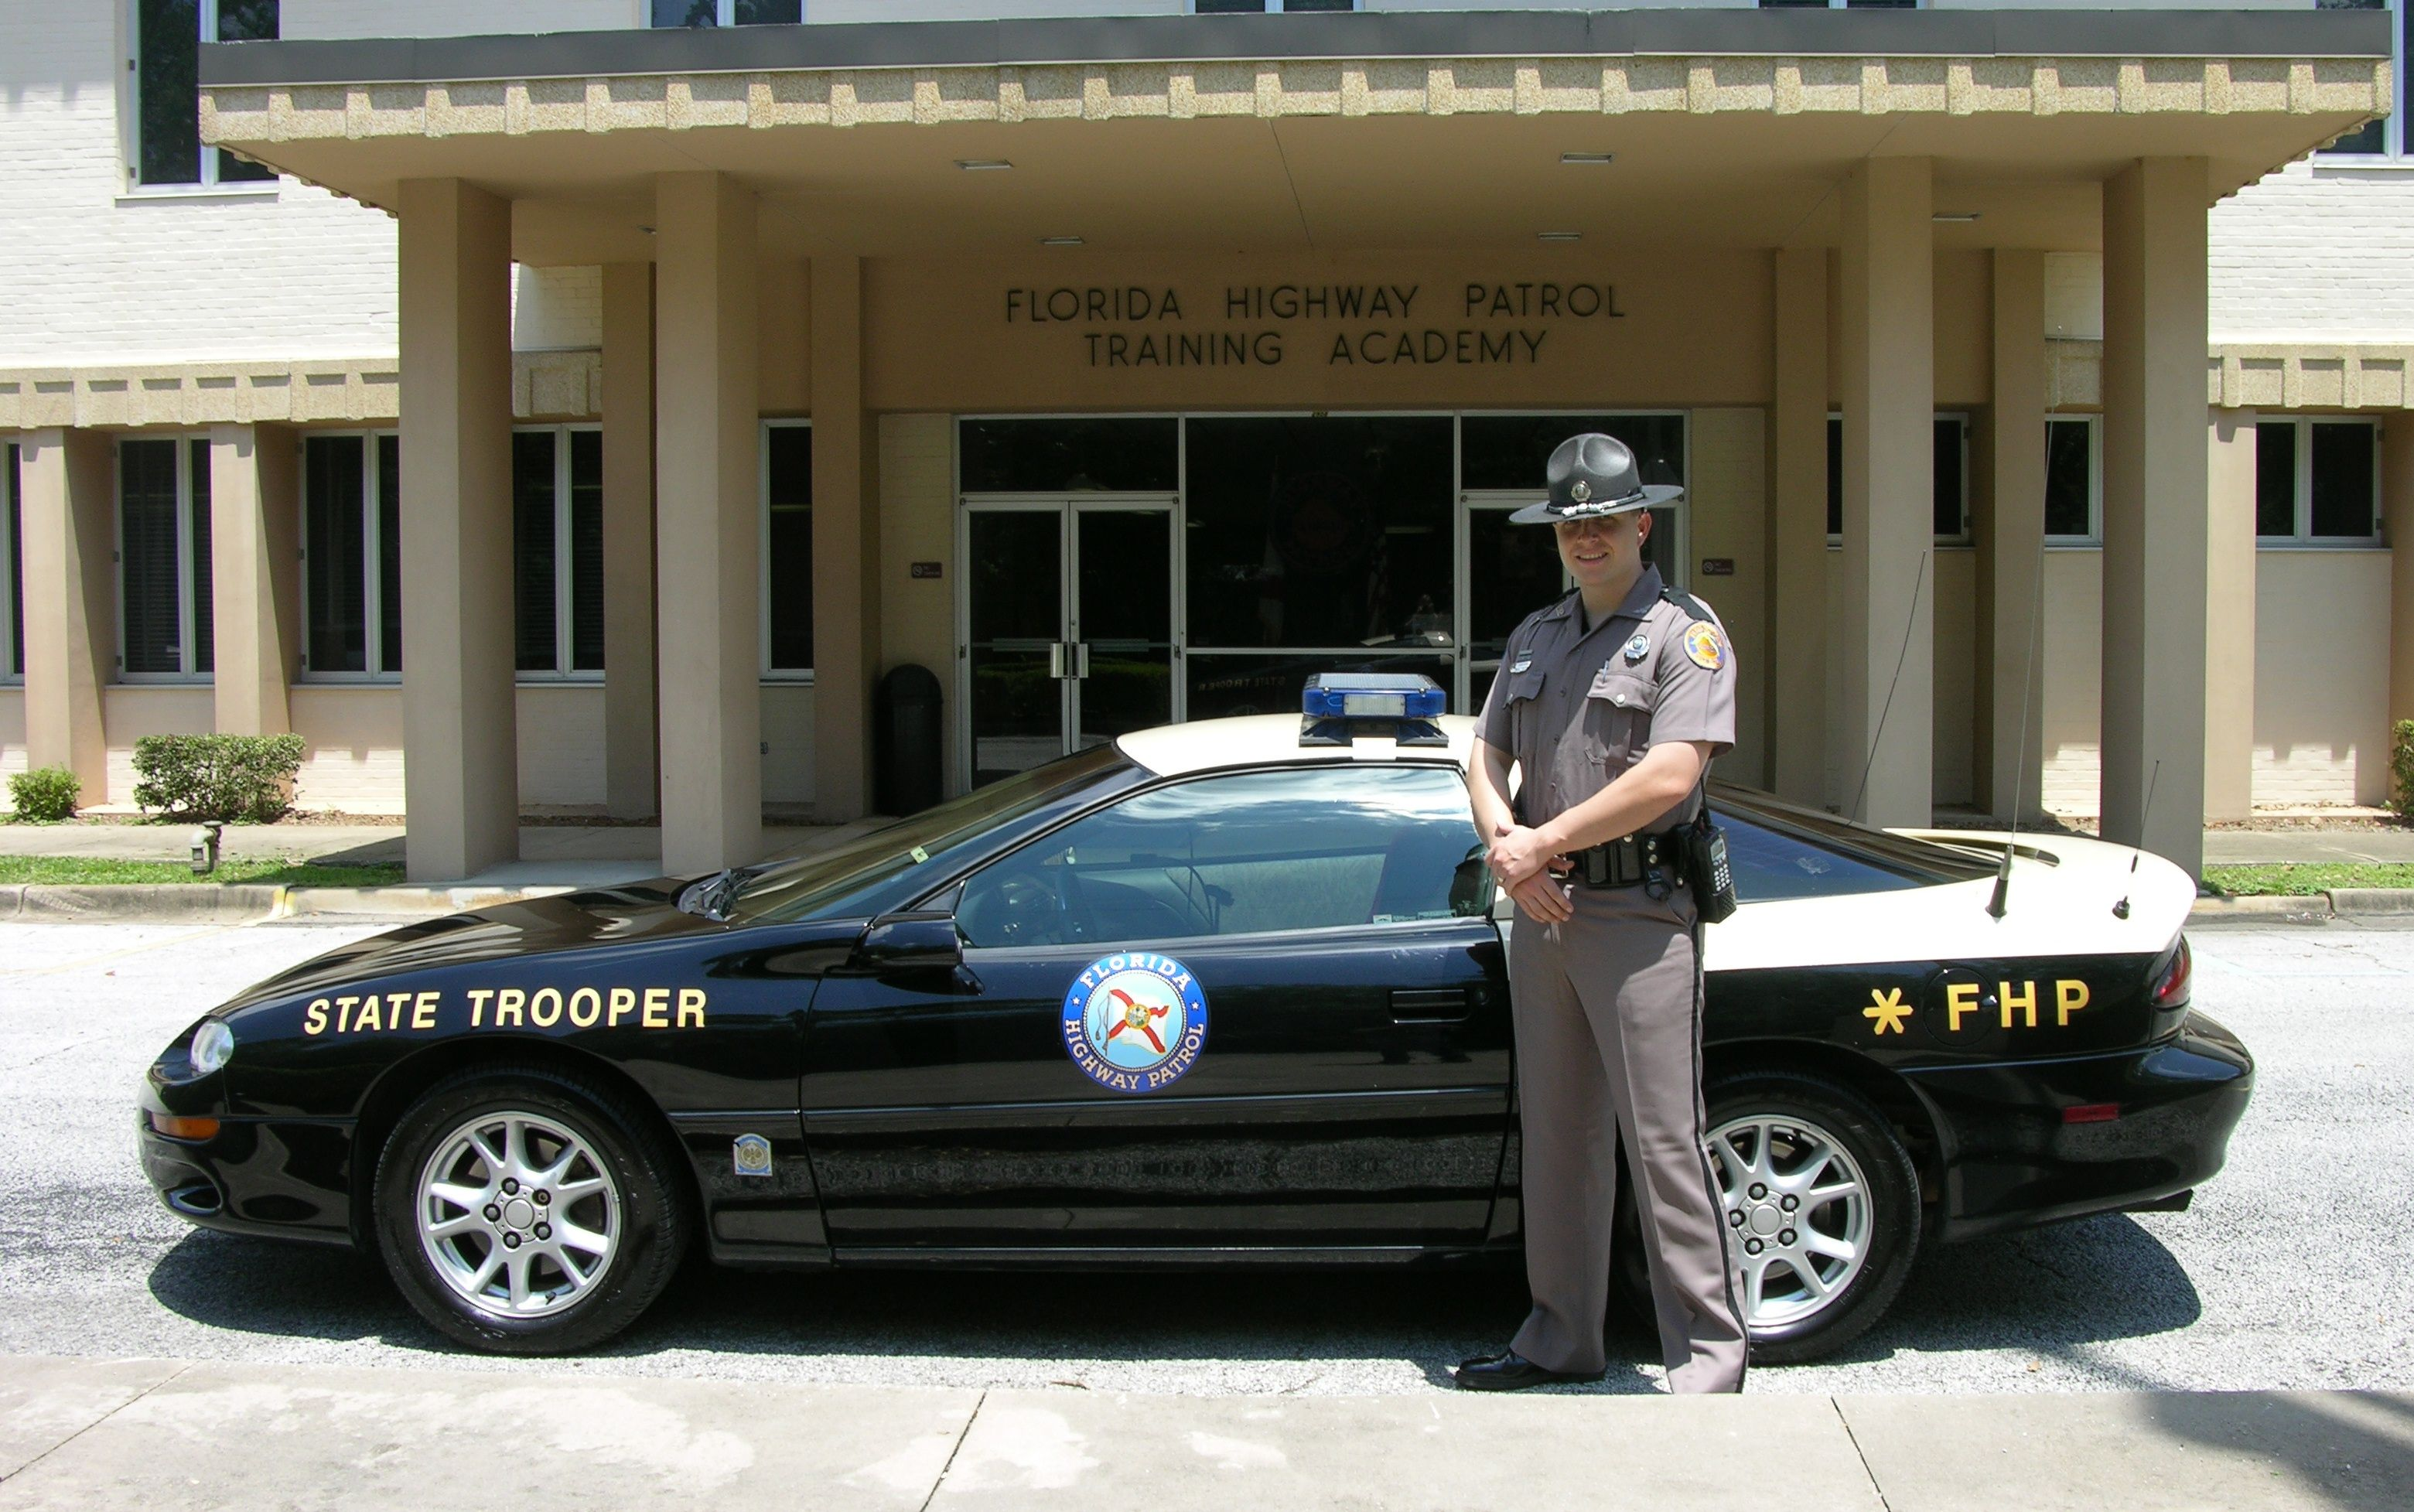 BangShift.com This 1970 Ford Torino Police Car Tribute Is ...  |1970 Police Cars Florida